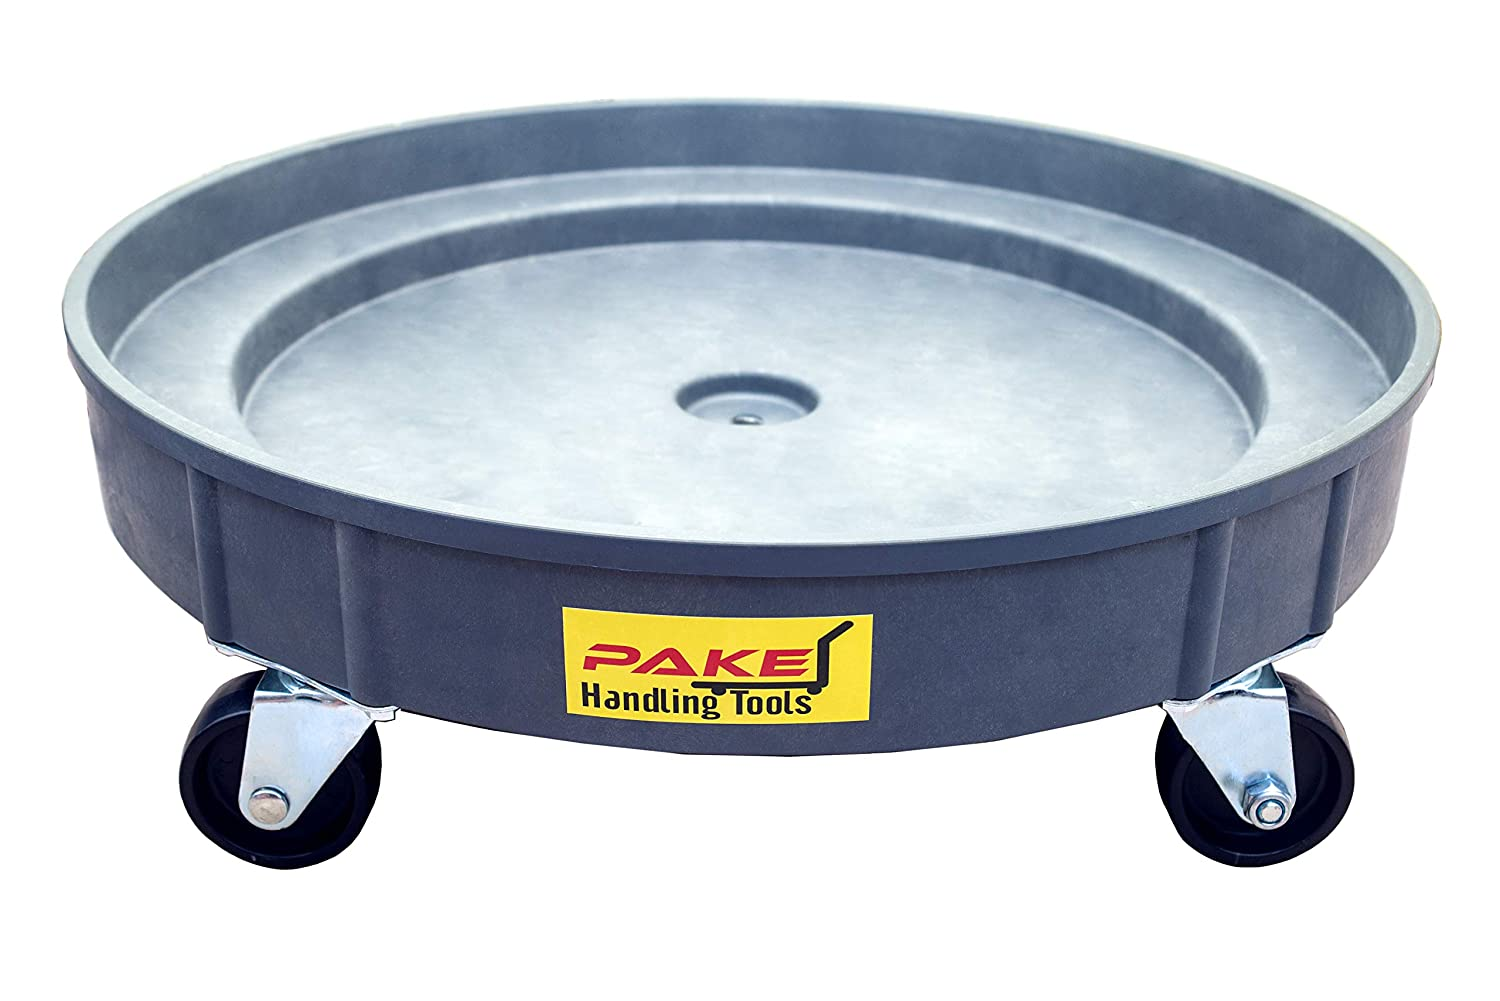 Pake Handling Max 86% OFF Tools 30 Purchase Gallon and 55 - Dolly Drum Durable